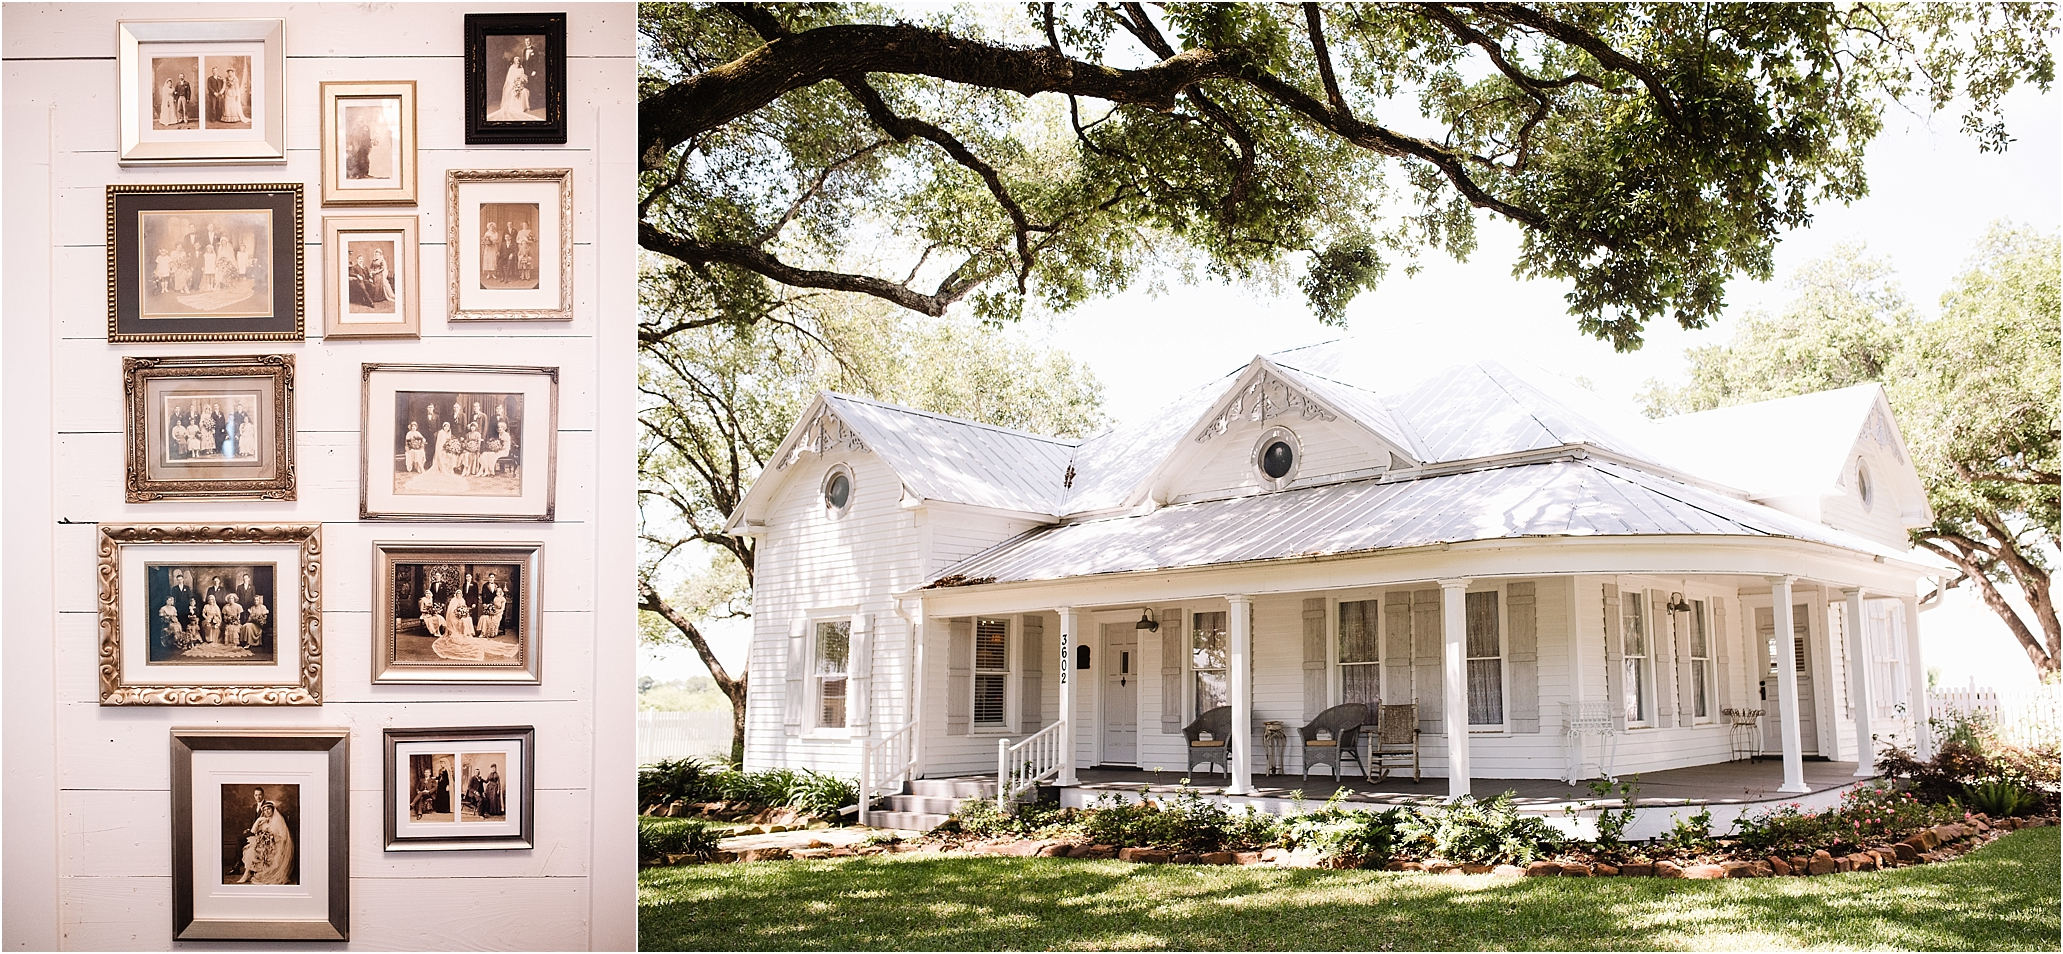 PattisonHouse_TexasWeddingPhotographer_CarlyCrockett&MattBrownWedding_0044.jpg